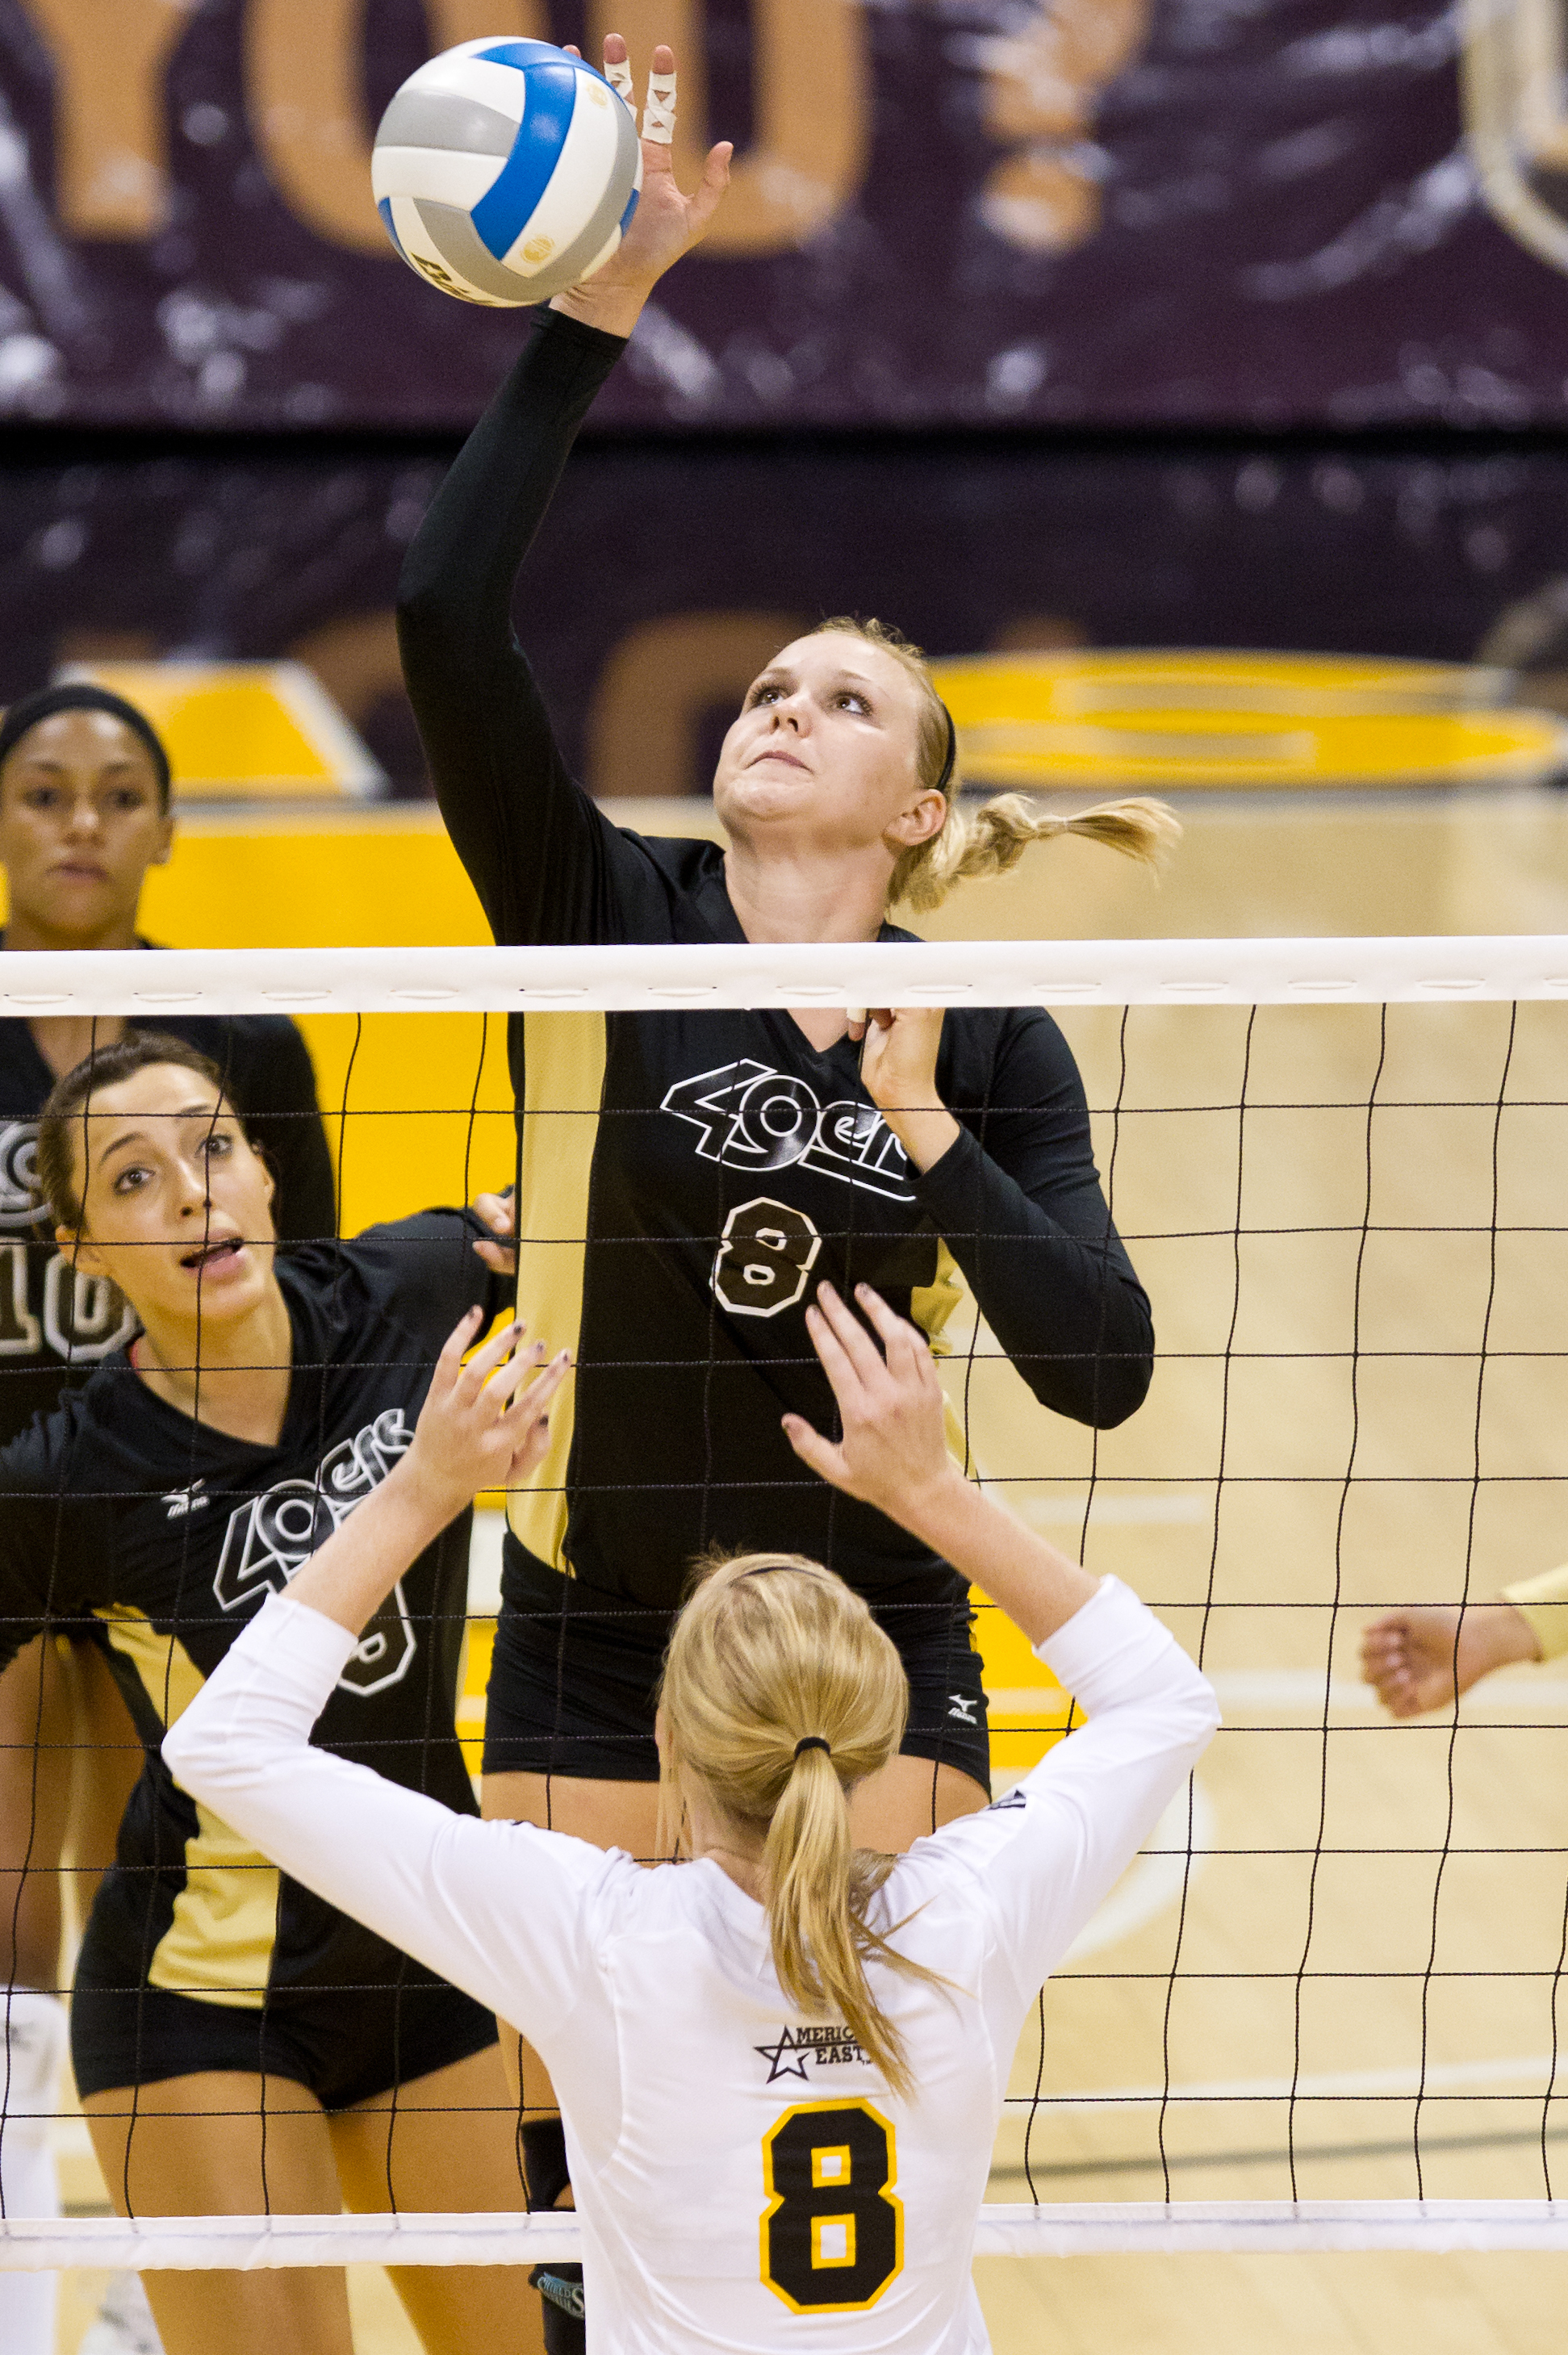 aa33b4e3a Haleigh Hampton had 11 kills on .364 hitting with six blocks.